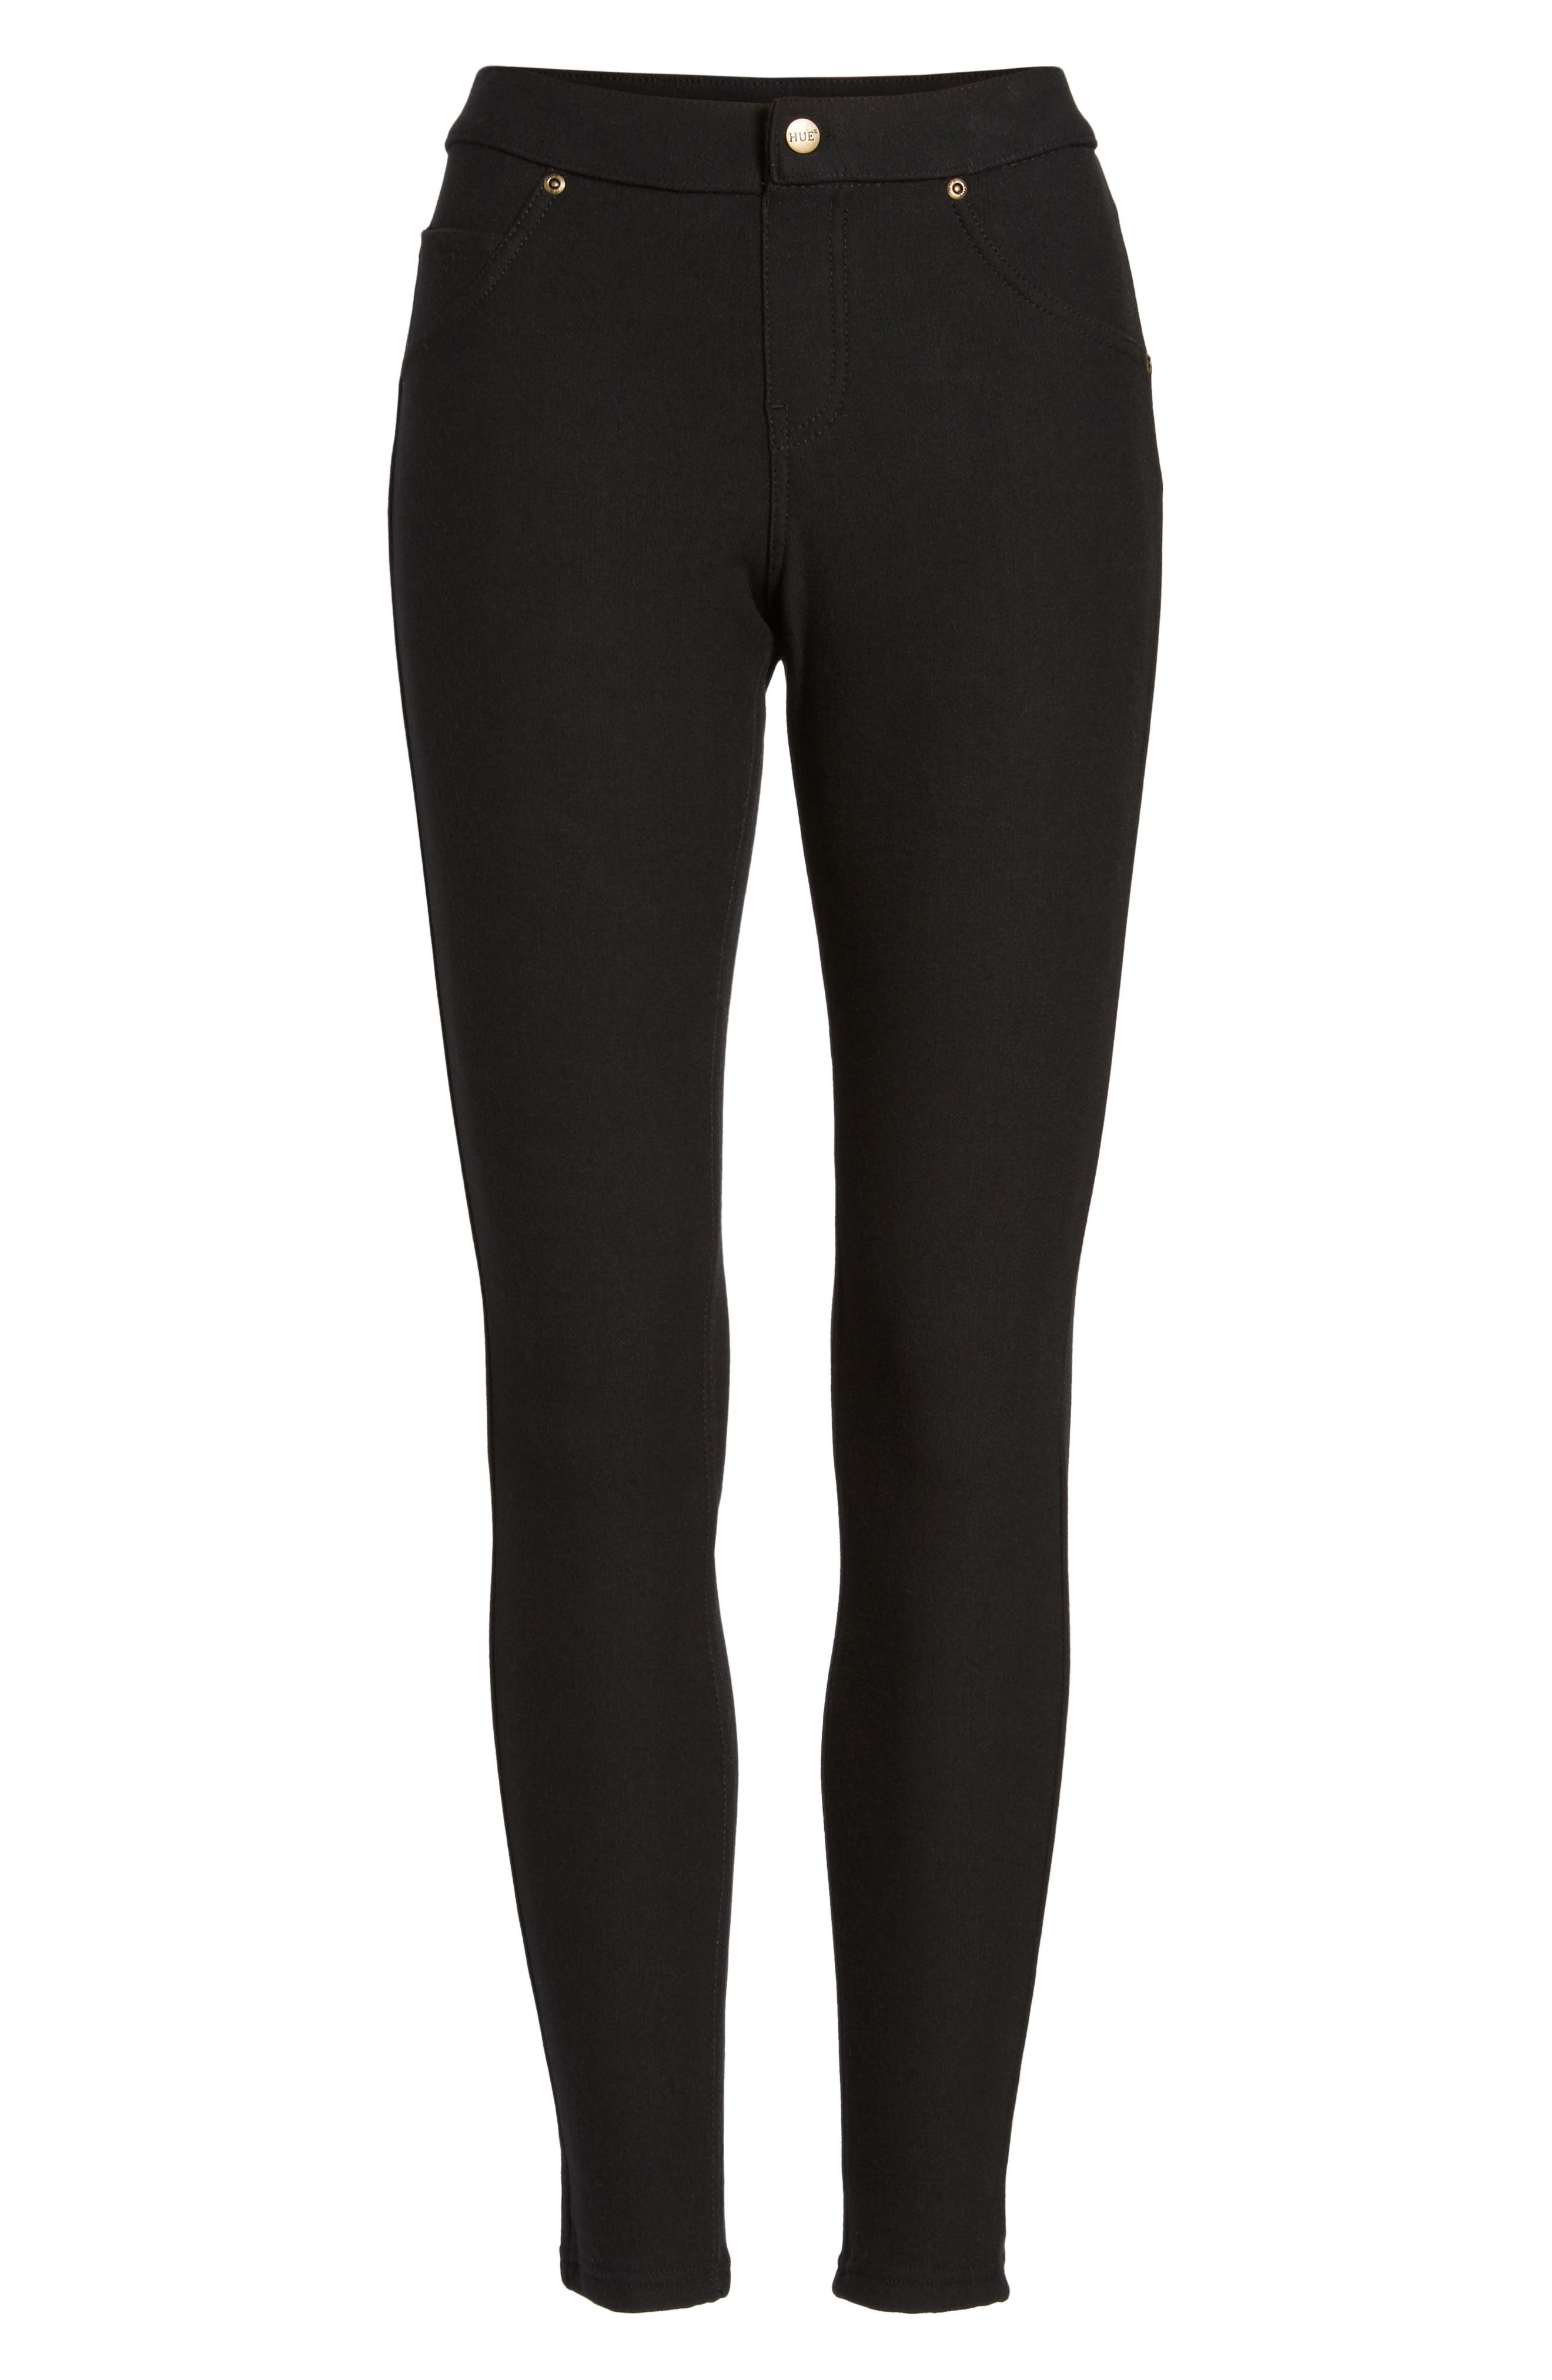 Alternate Image 4  - Hue Fleece Lined Leggings